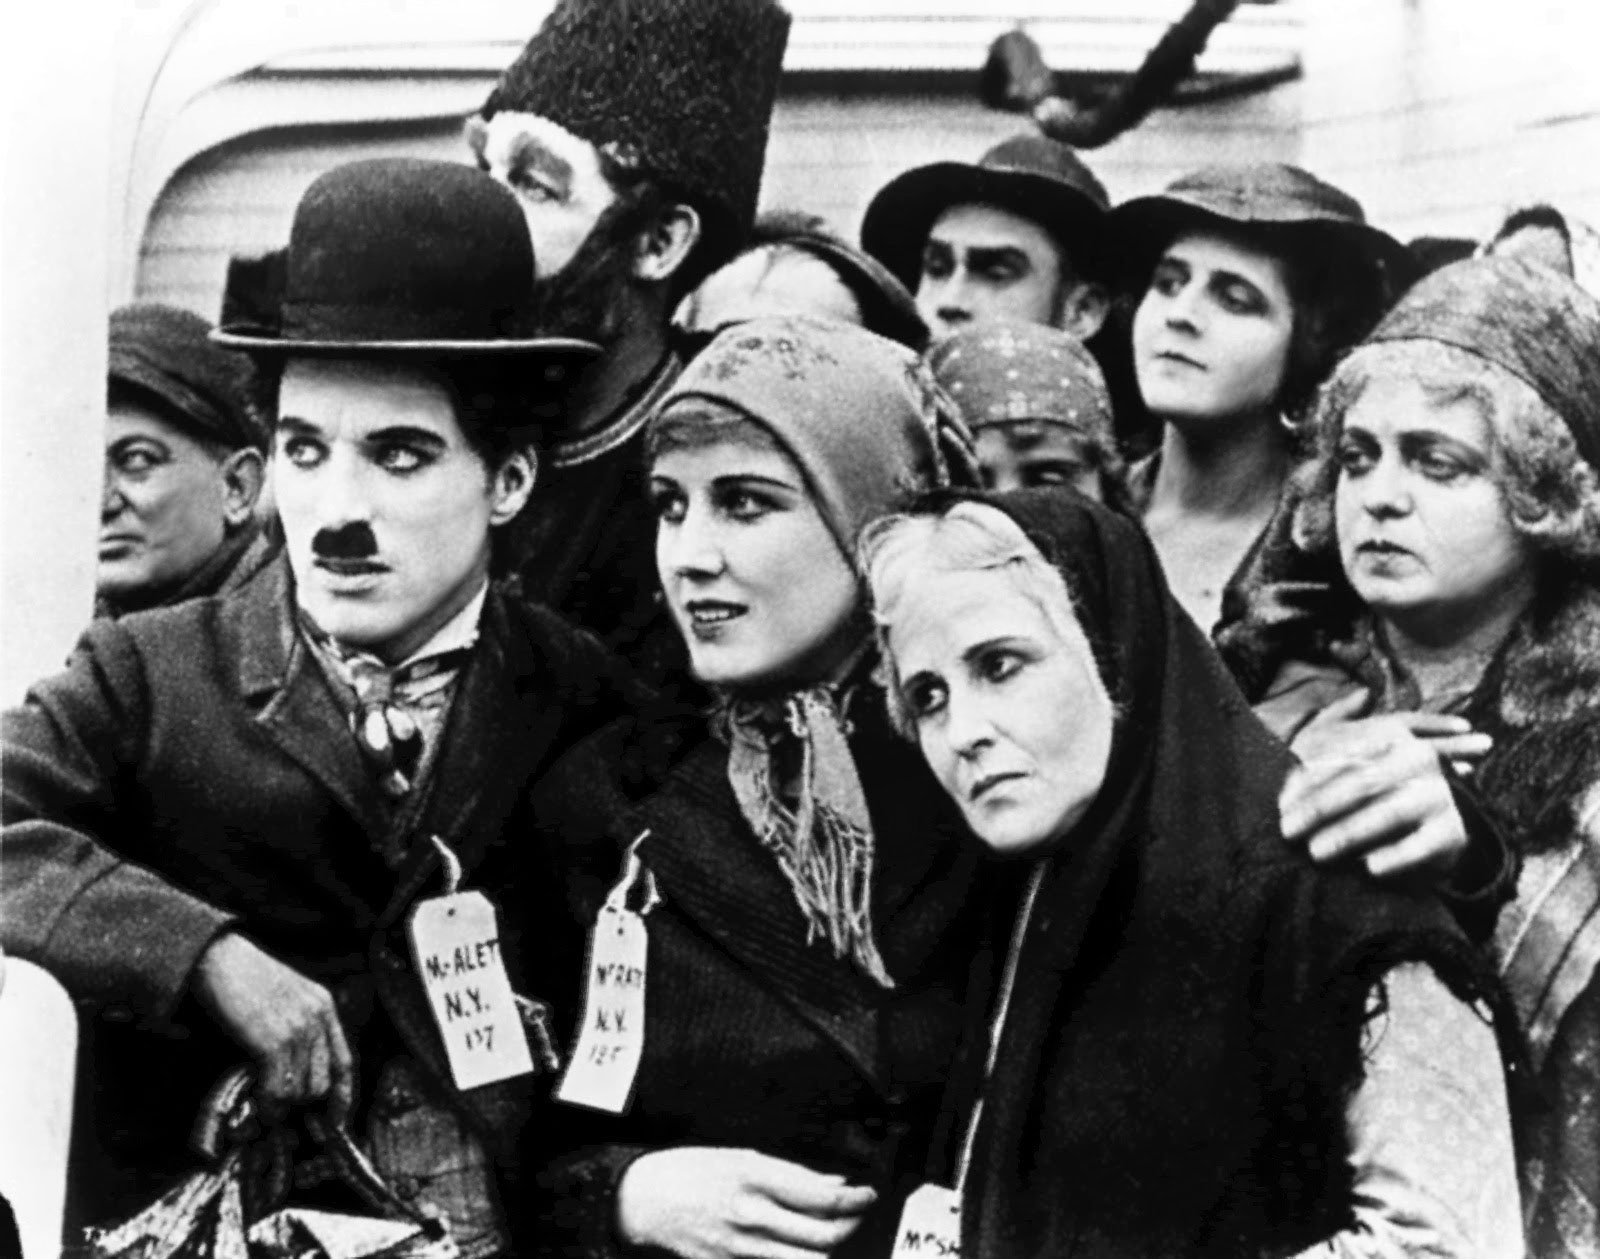 7 Art Cinema | Charlie Chaplin - 1917 - L'Emigrant | 01 | Photographie du Film